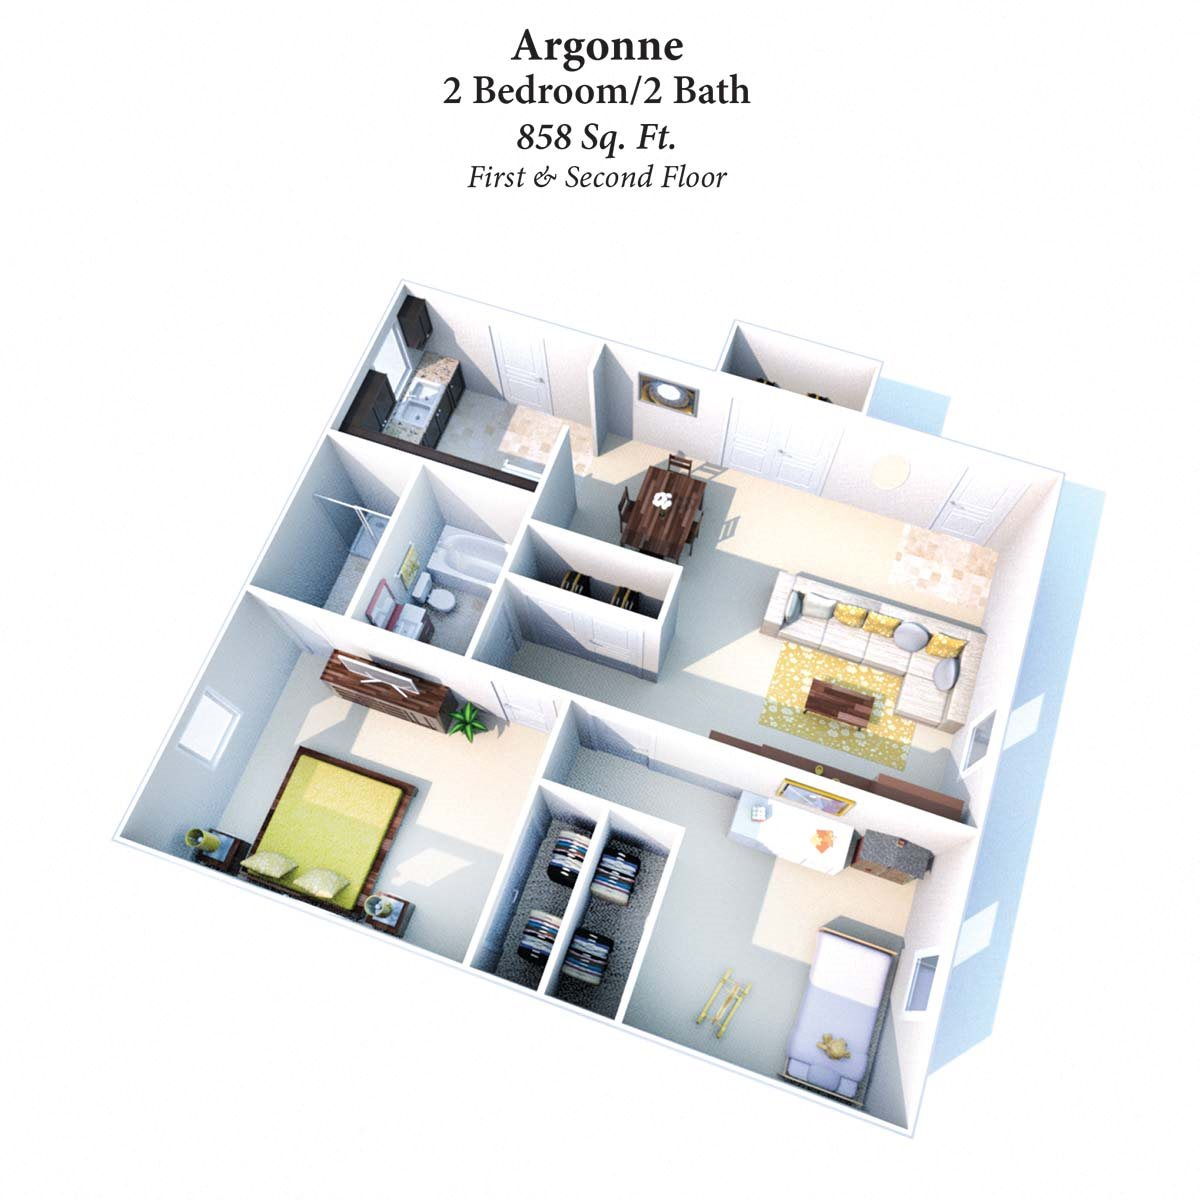 2B/2B Argonne 858SqFt Floor Plan 6